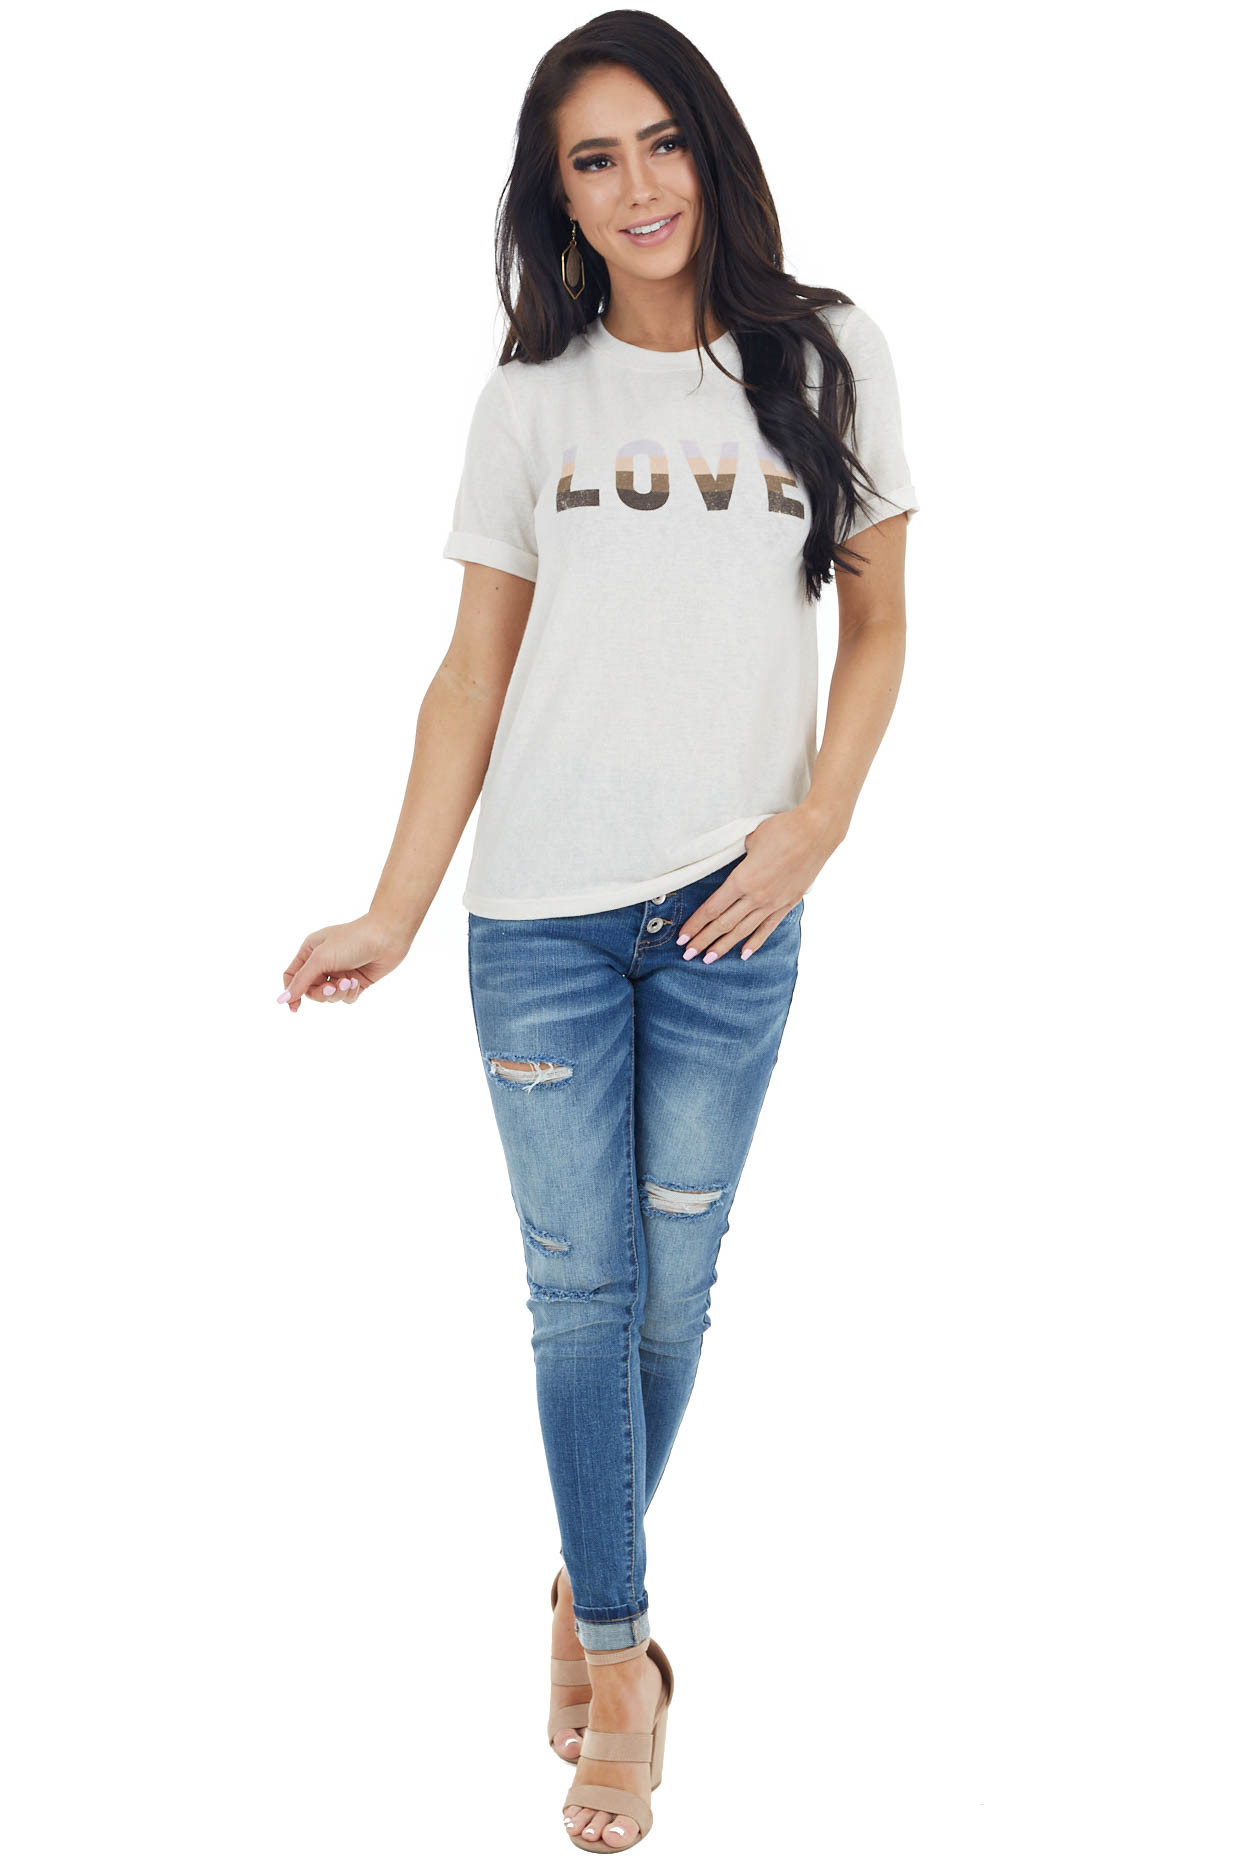 Cream 'Love' Graphic Stretchy Knit Tee with Short Sleeves